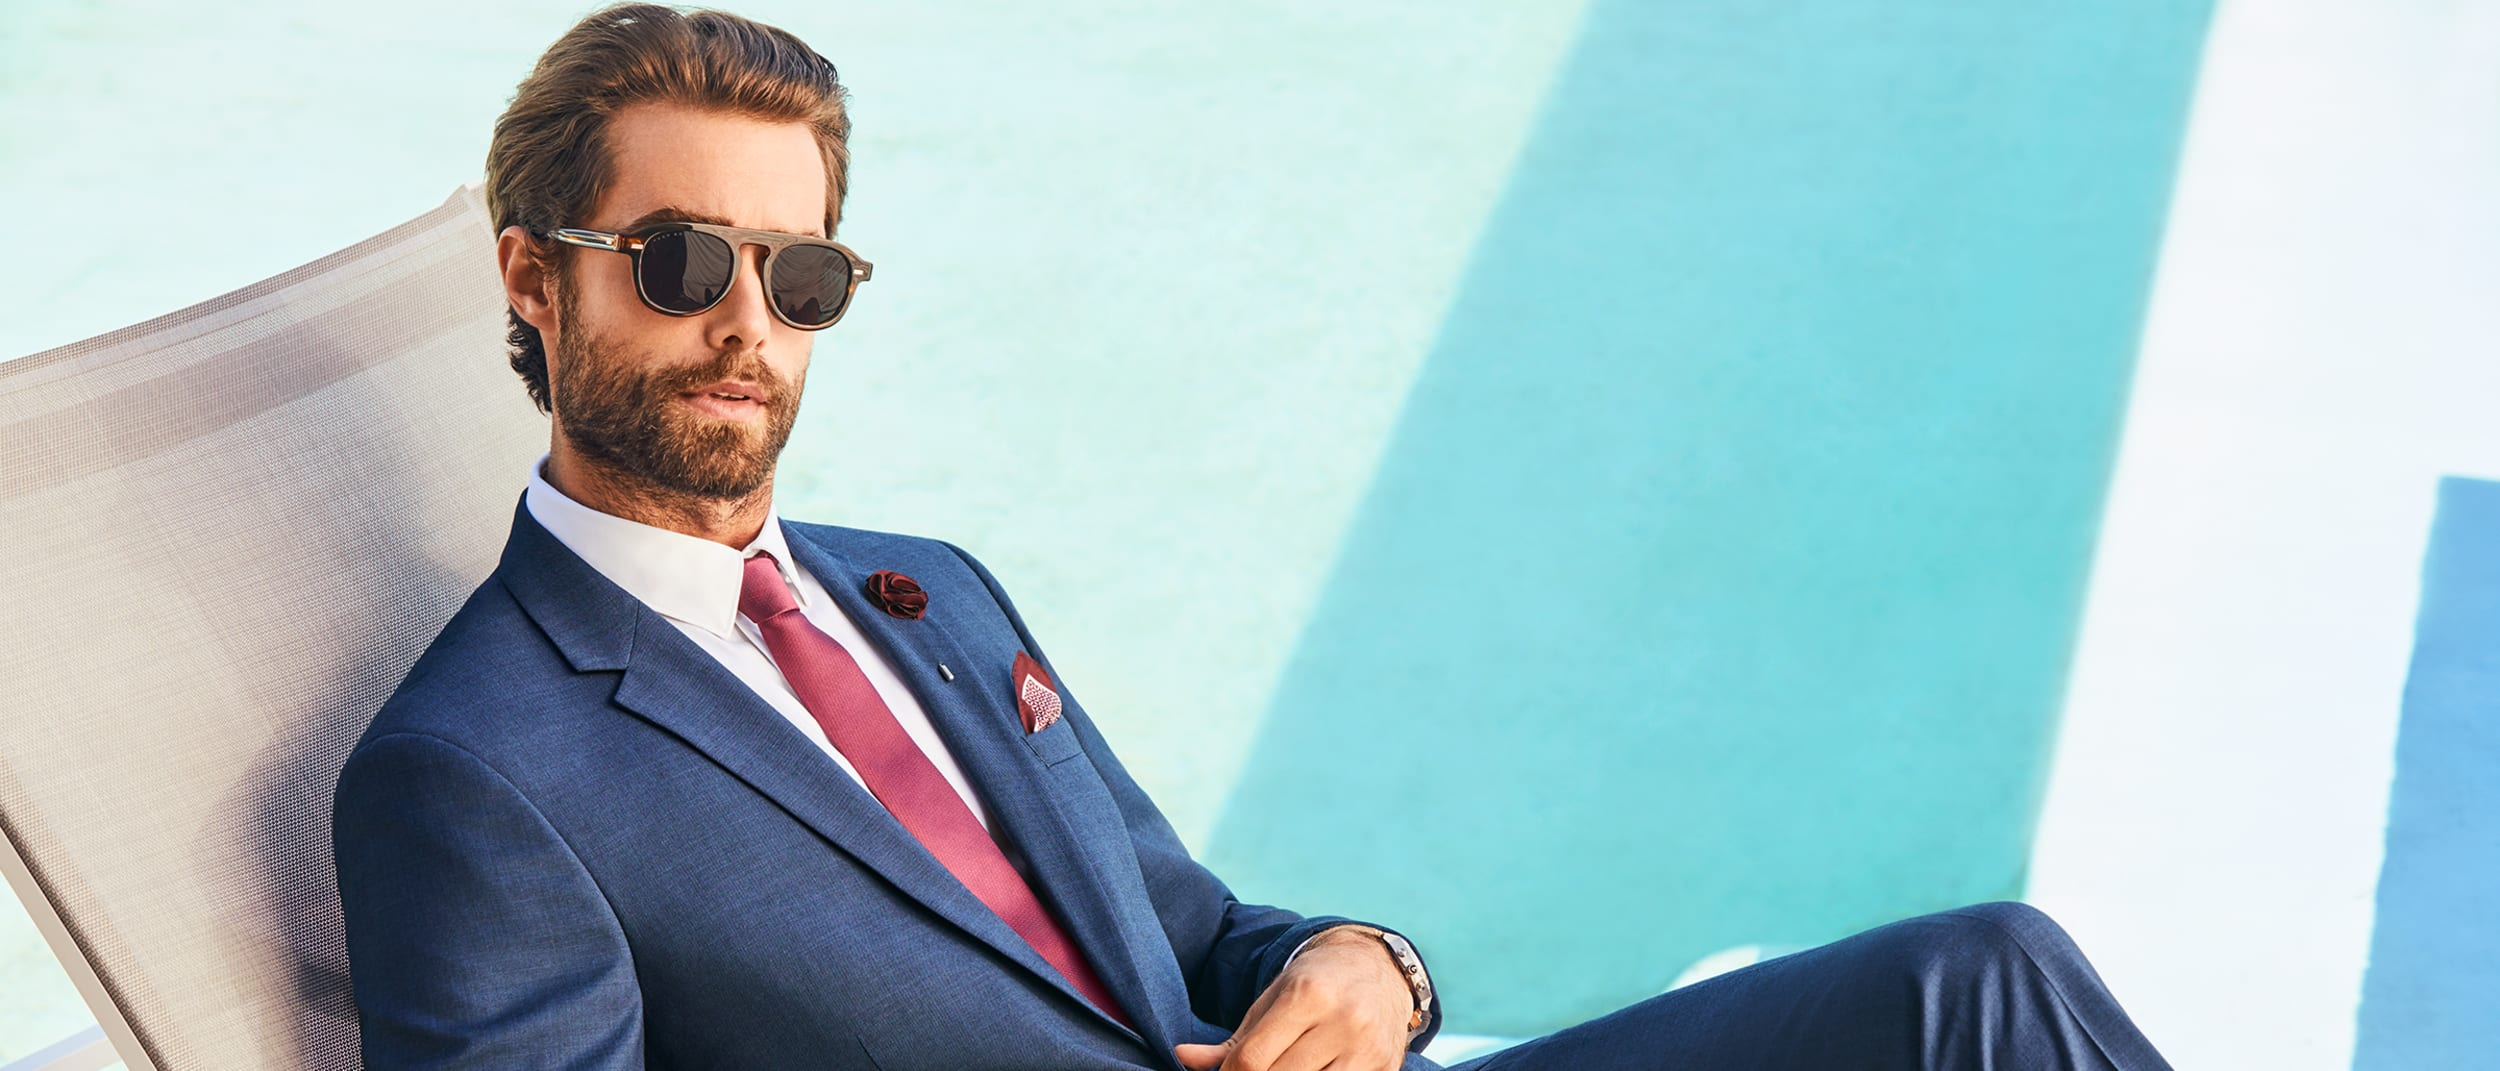 Tarocash: all suits now $199.99